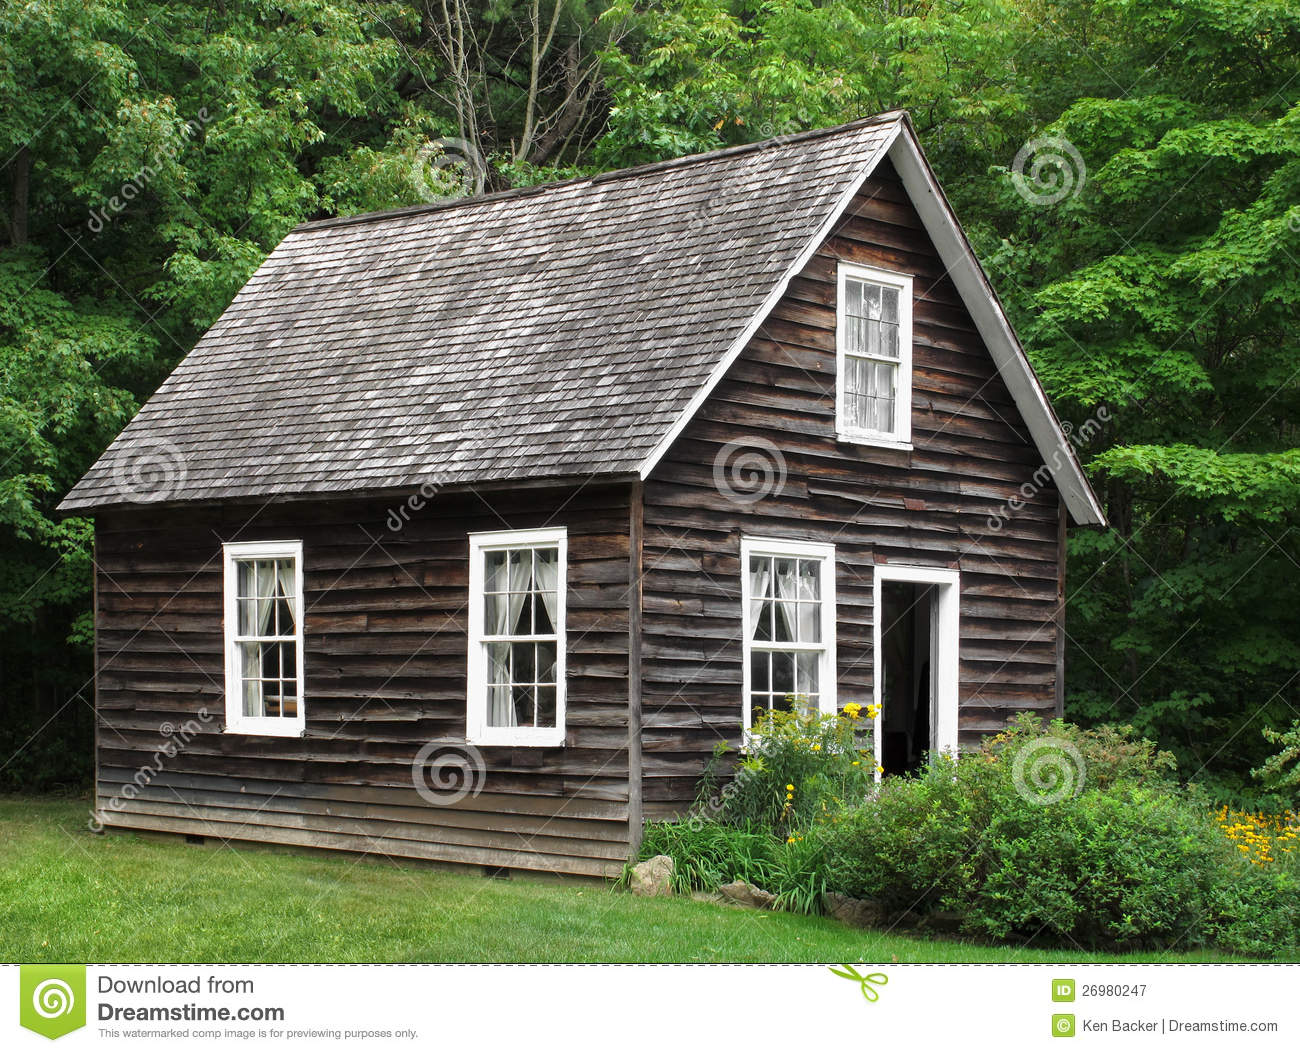 Small unpainted natural dark wood rustic house with trees and bushes